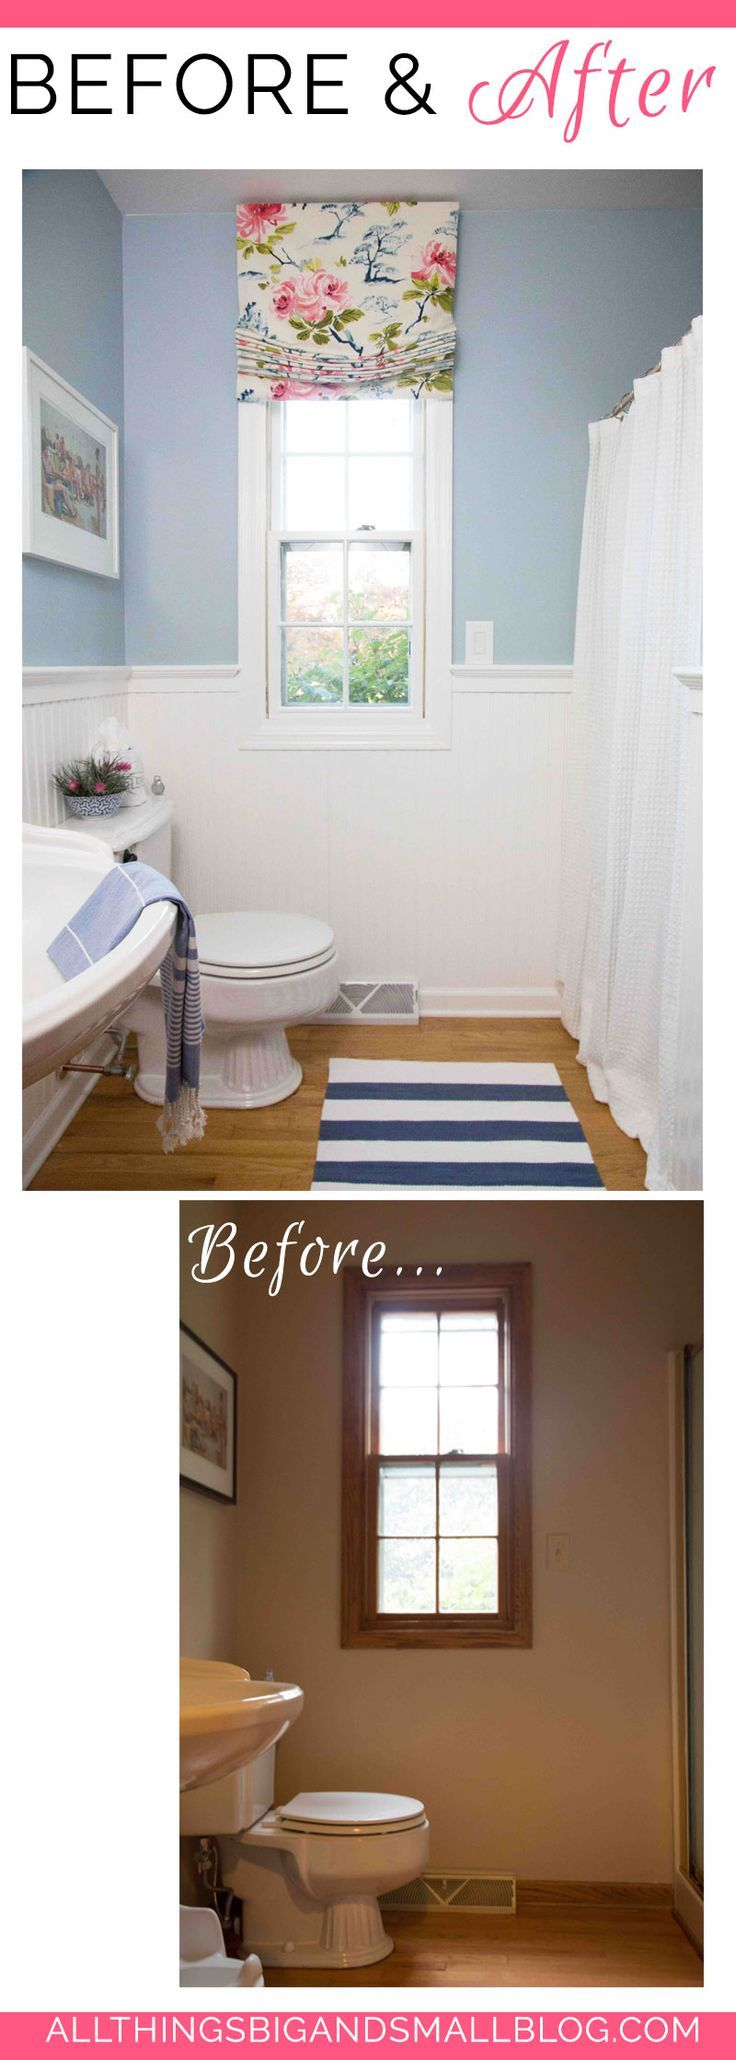 1000+ Ideas About Bathroom Before After On Pinterest